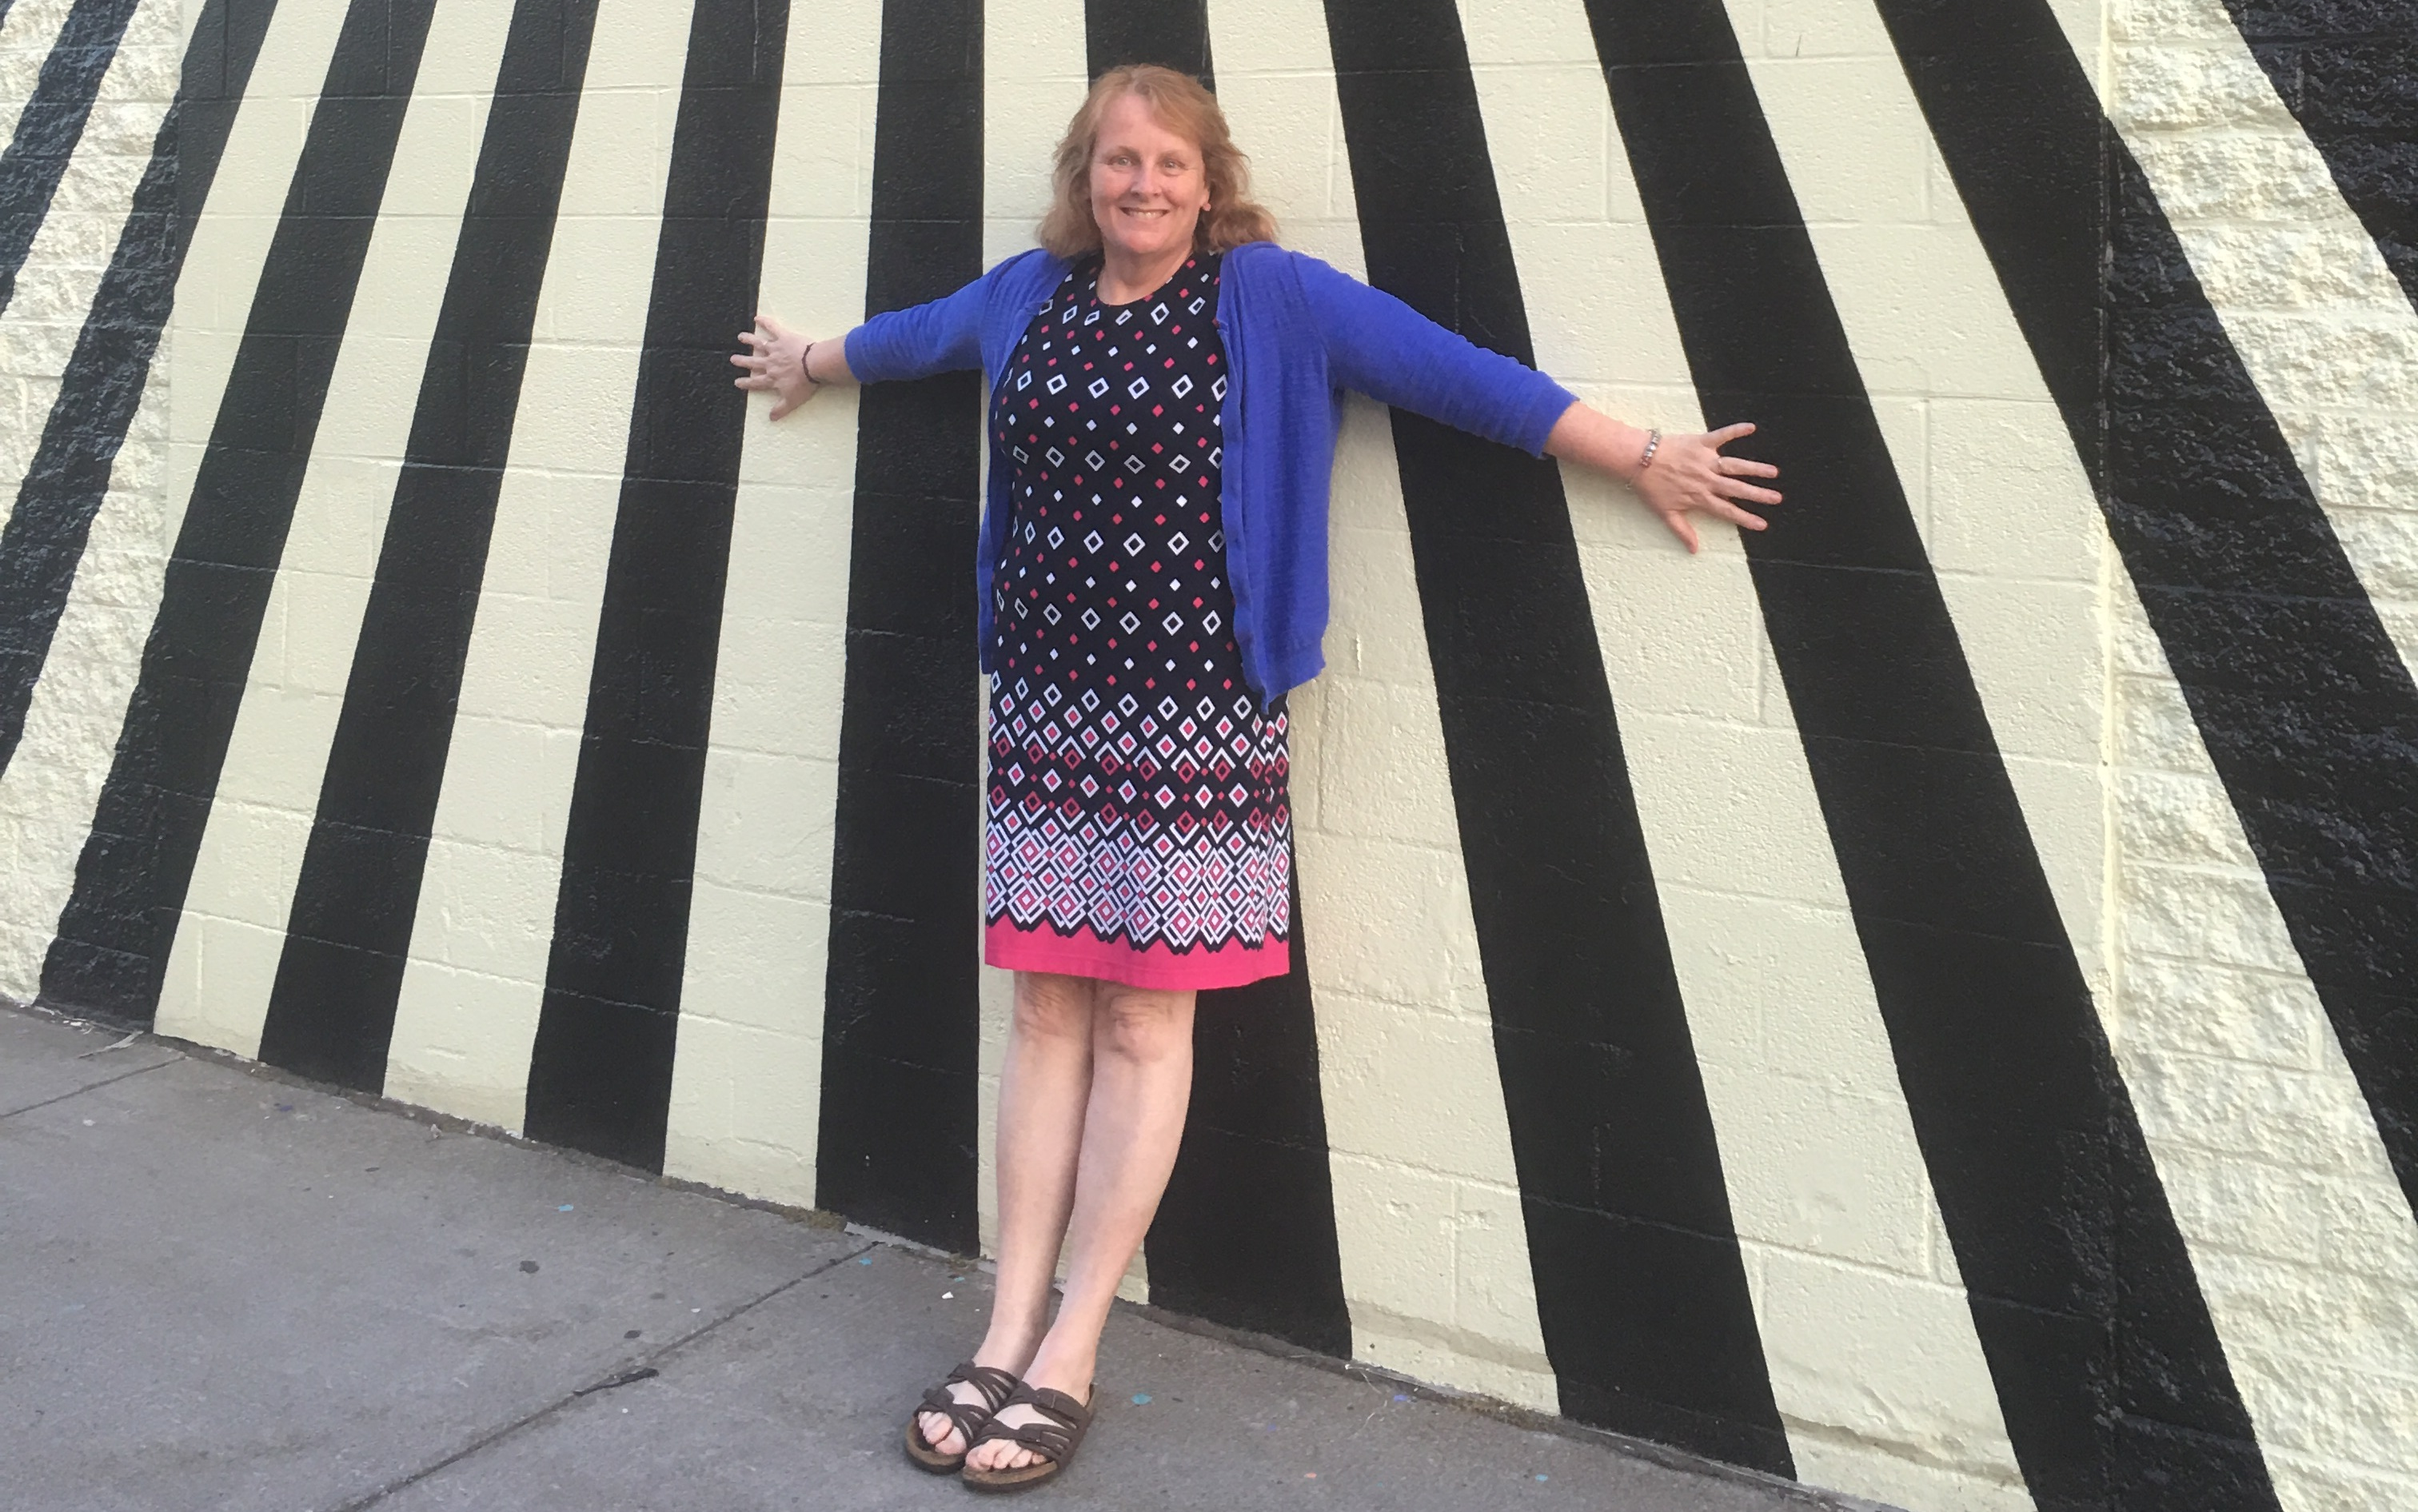 The author standing in front of a black and white striped wall